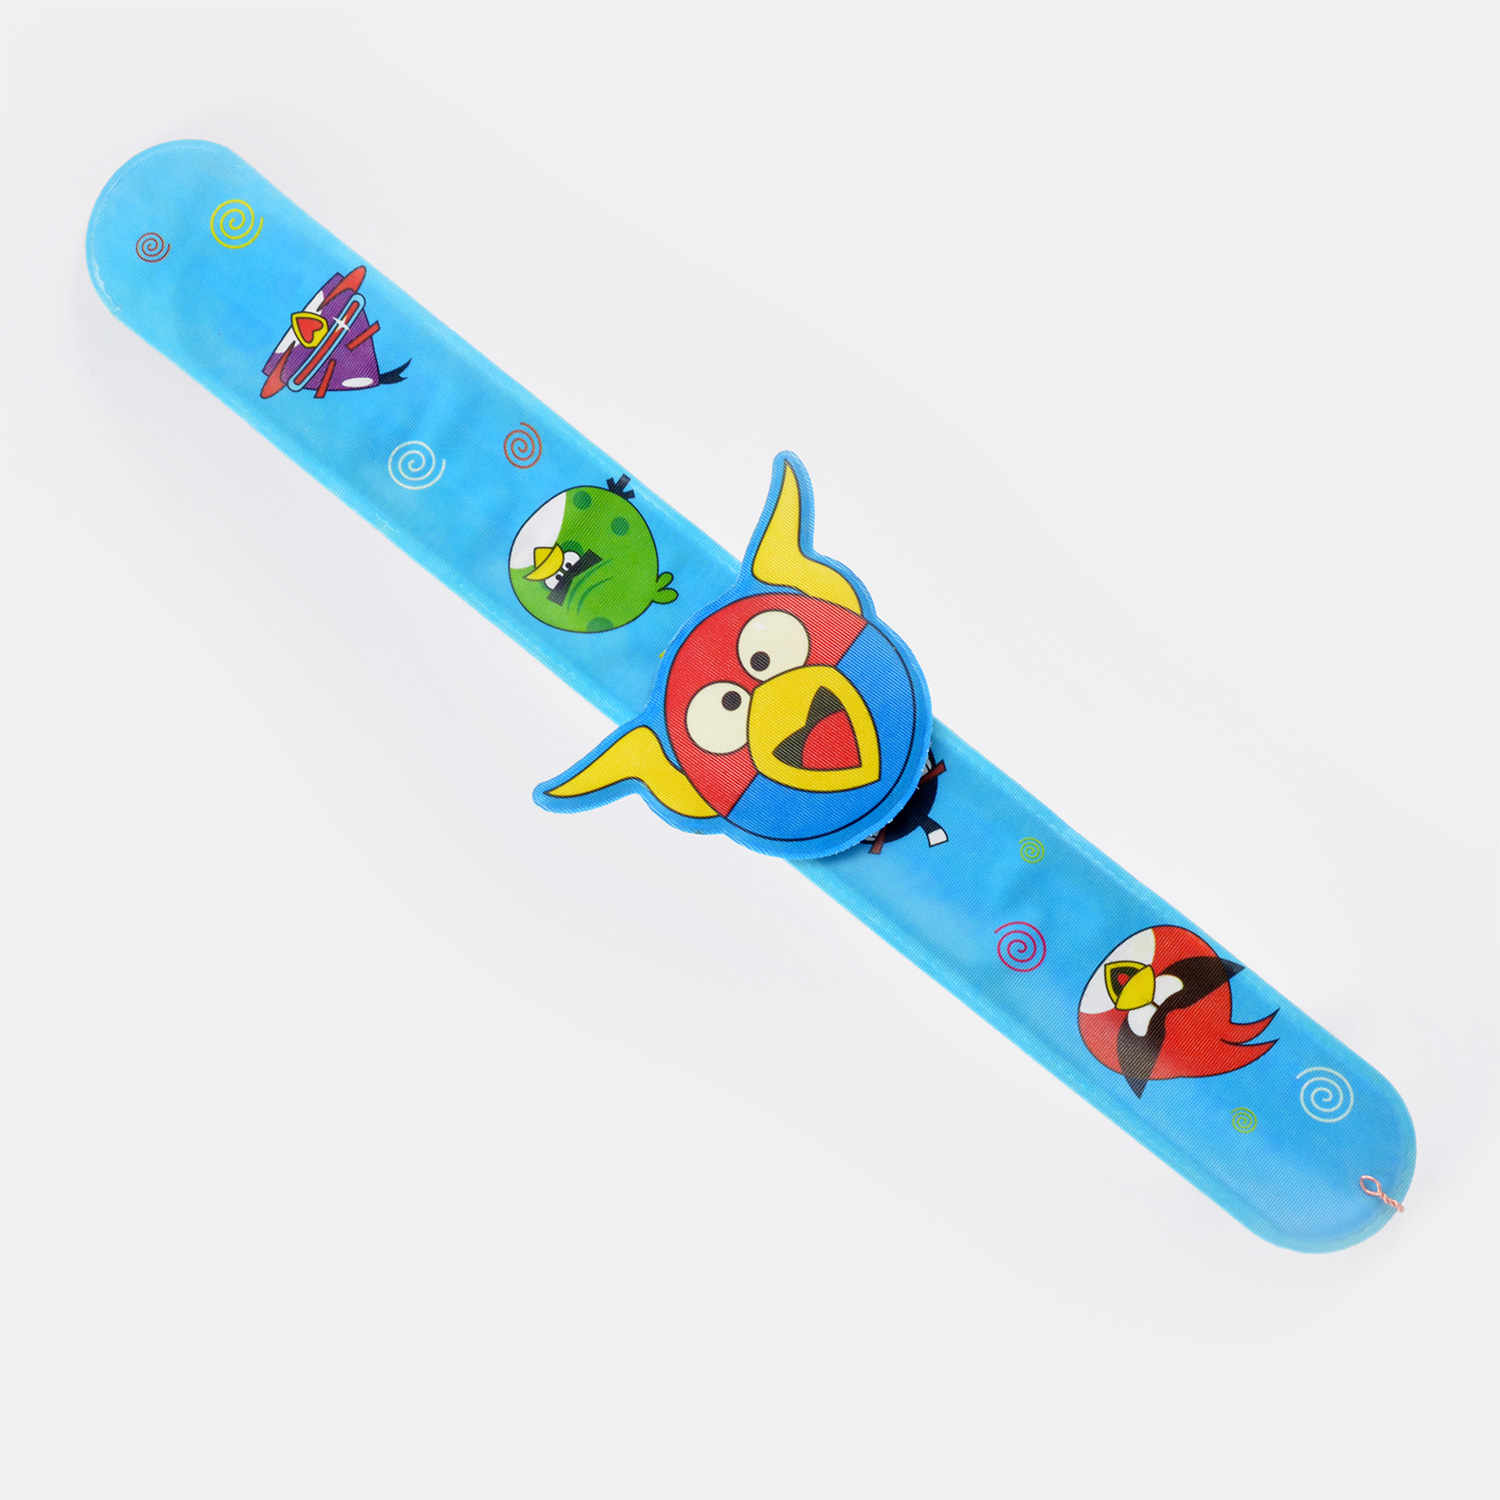 Blue and Red Color Angry Bird Hand Band Kids Rakhi